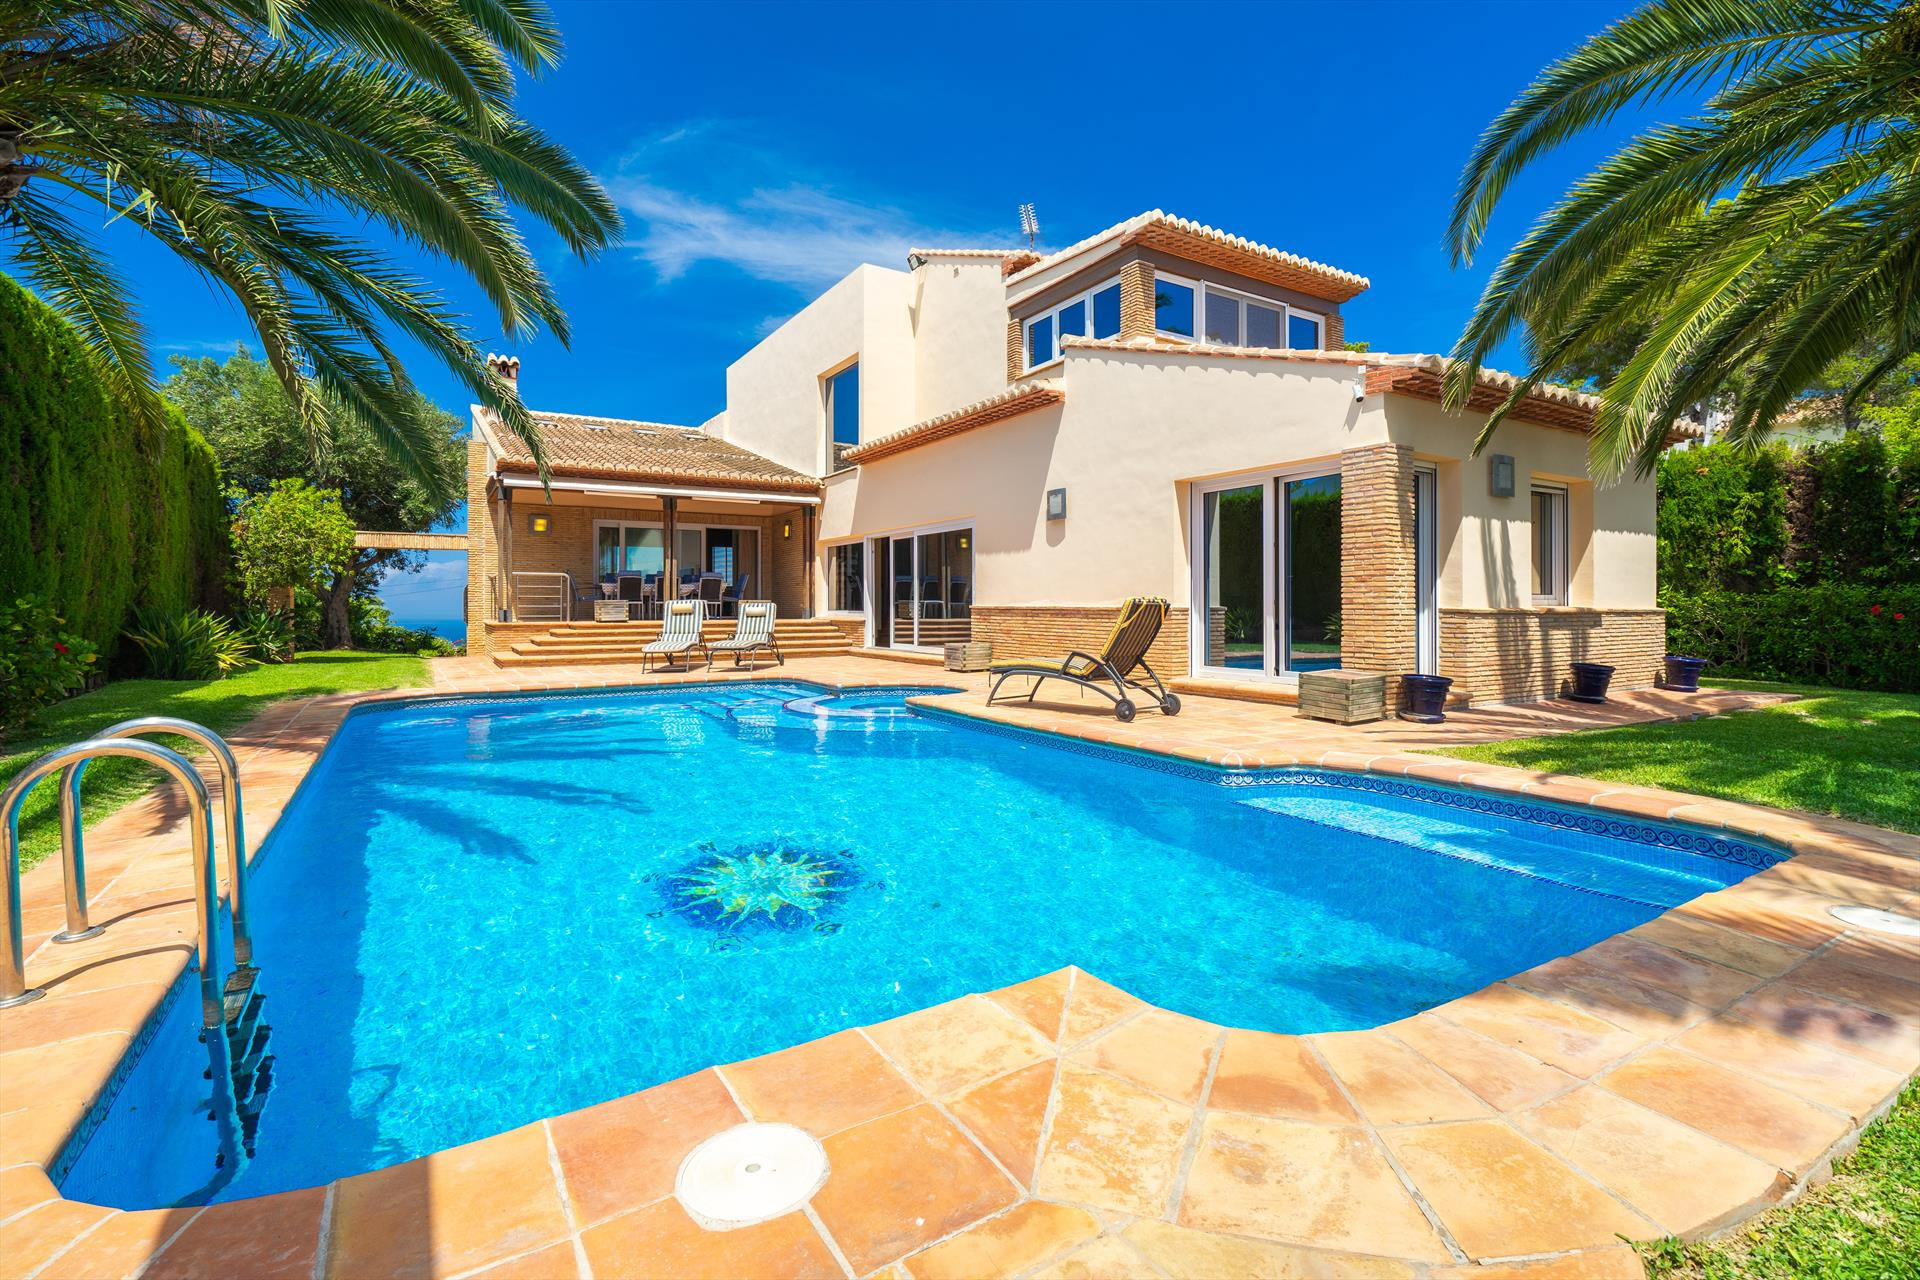 Roget, Large and romantic villa  with private pool in Javea, on the Costa Blanca, Spain for 8 persons...